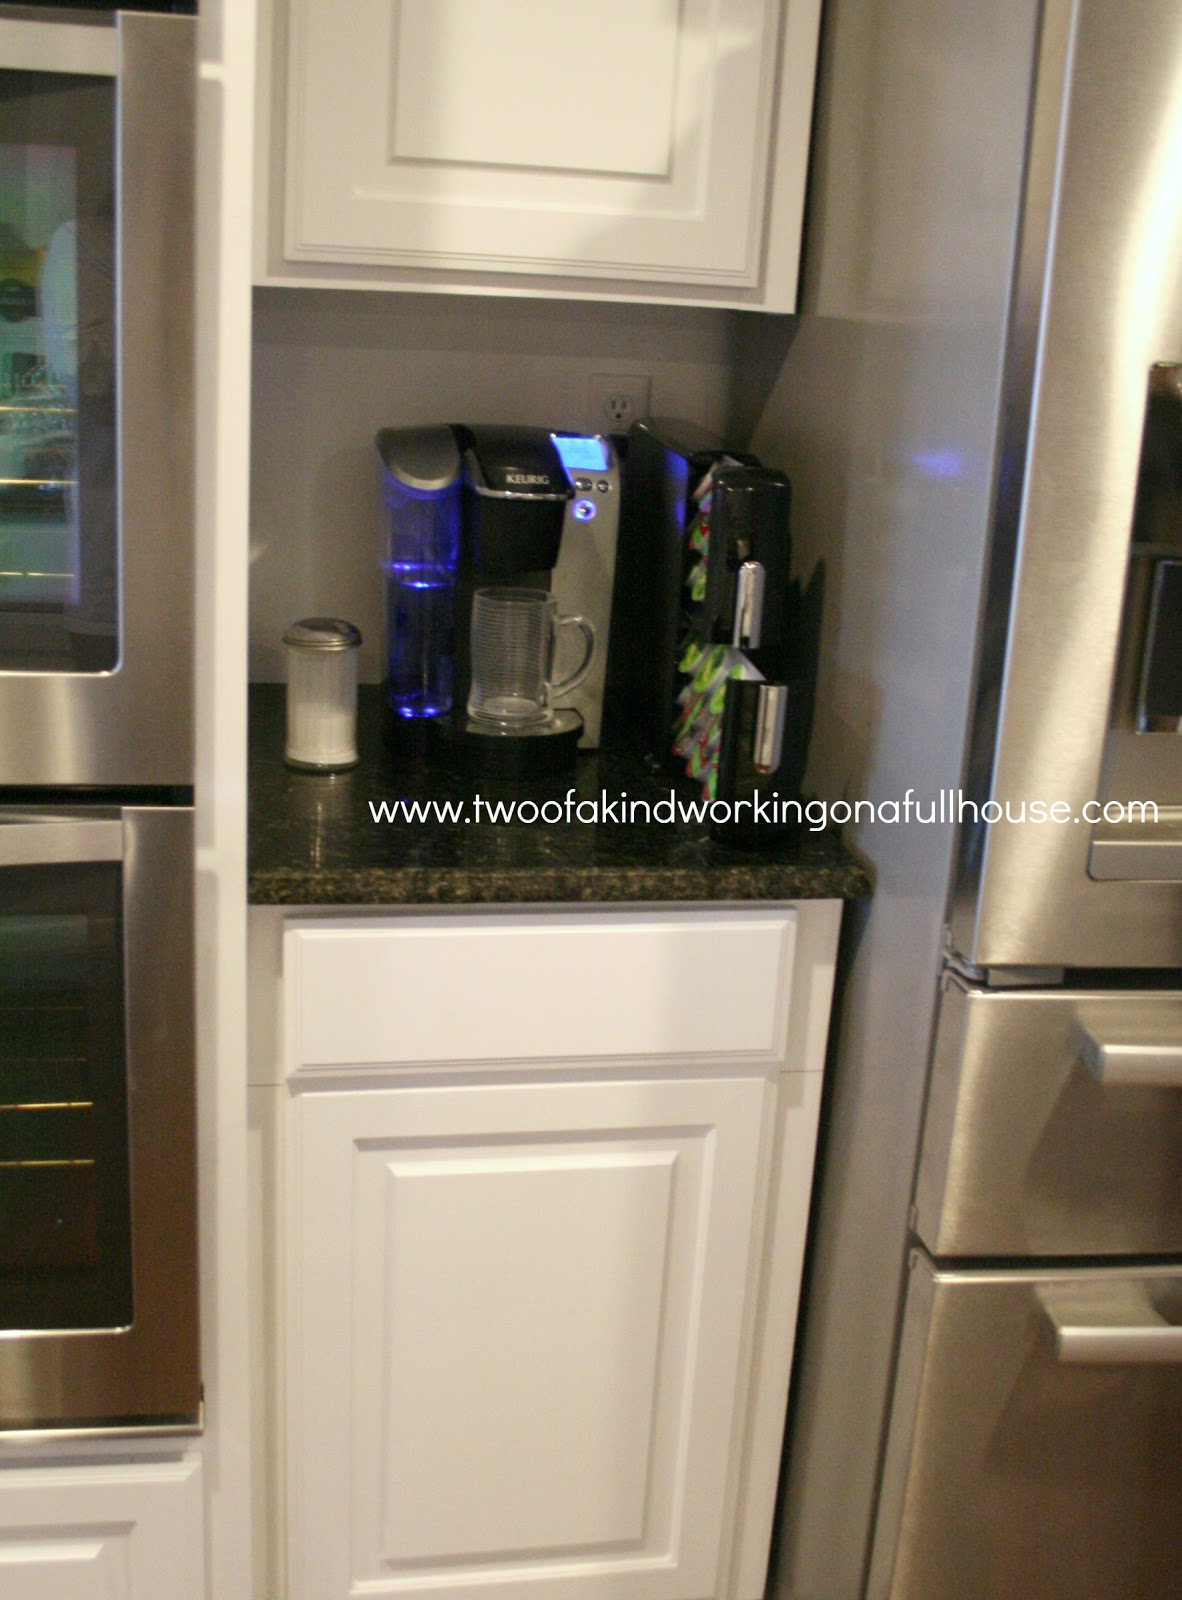 Two of a kind working on a full house & Keurig K-Cup® Pack Countertop Storage Drawer + Giveaway | Two of a ...